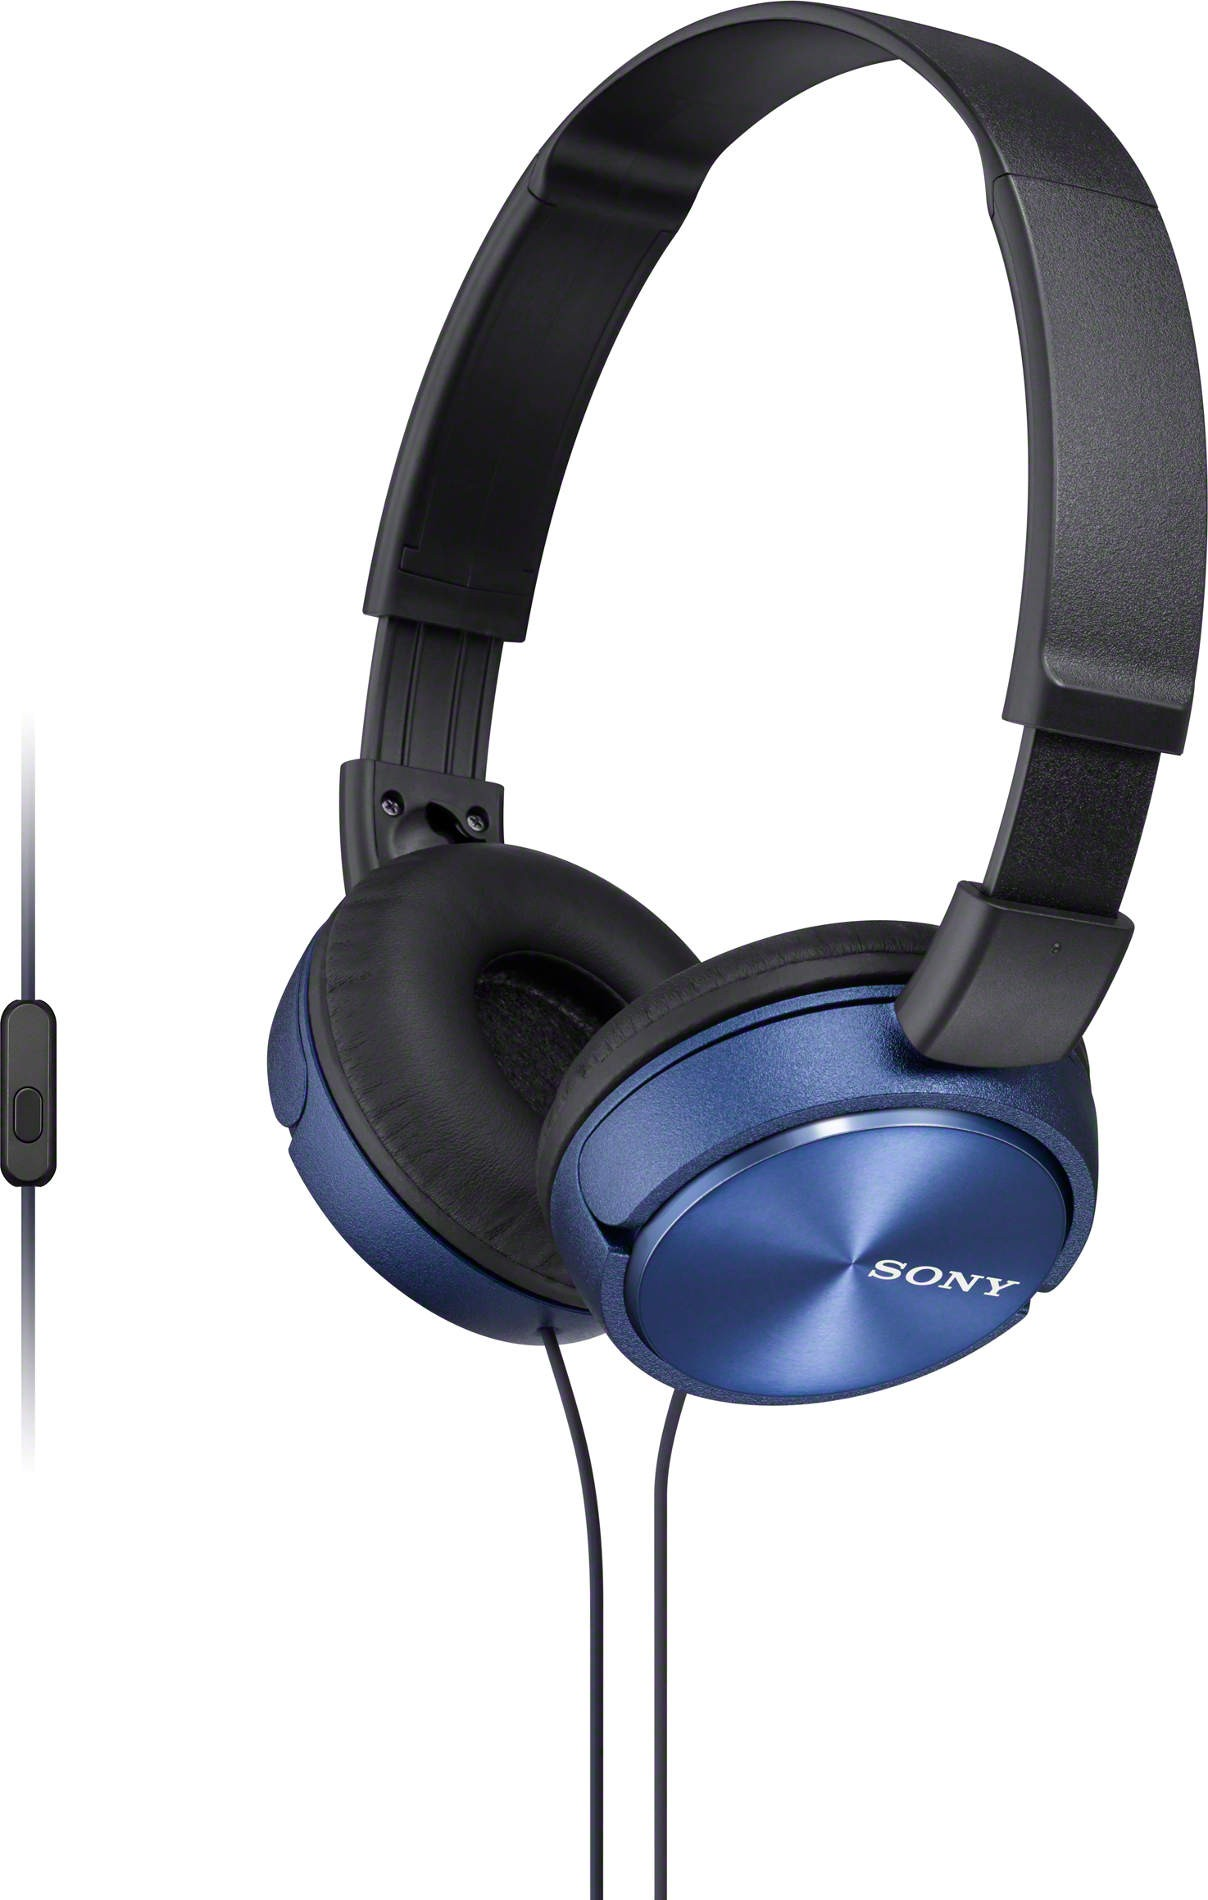 SONY - MDRZX 310 APL